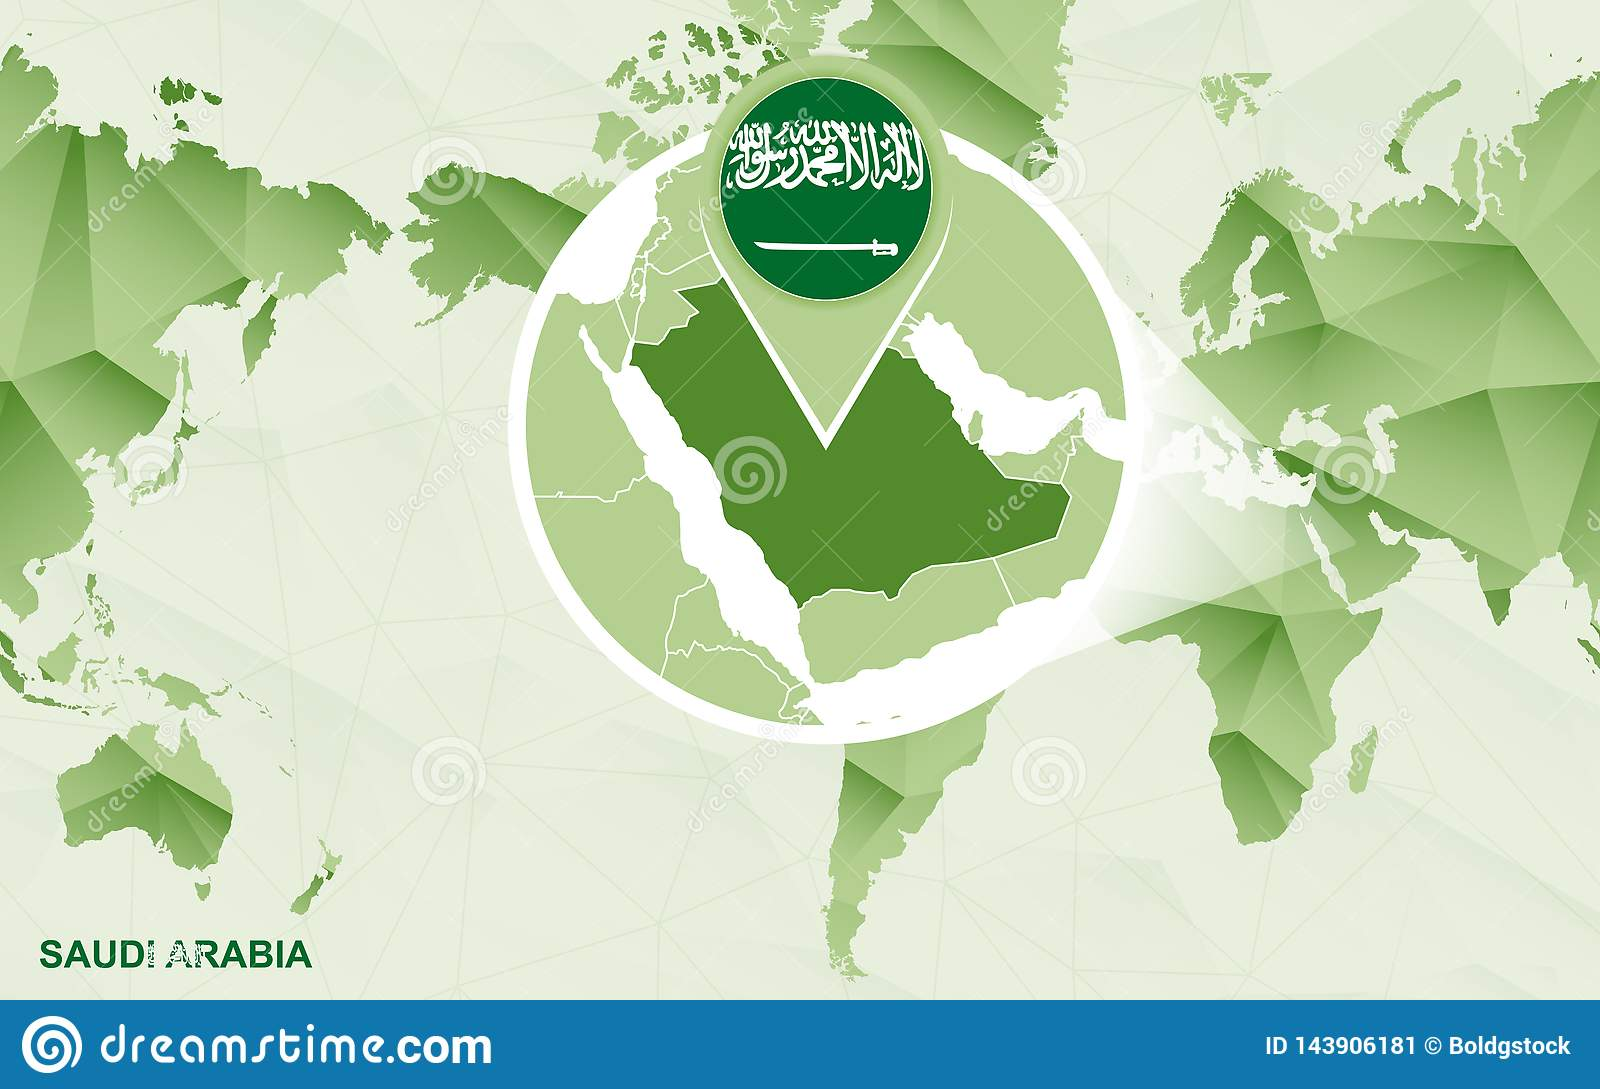 America Centric World Map With Magnified Saudi Arabia Map ...